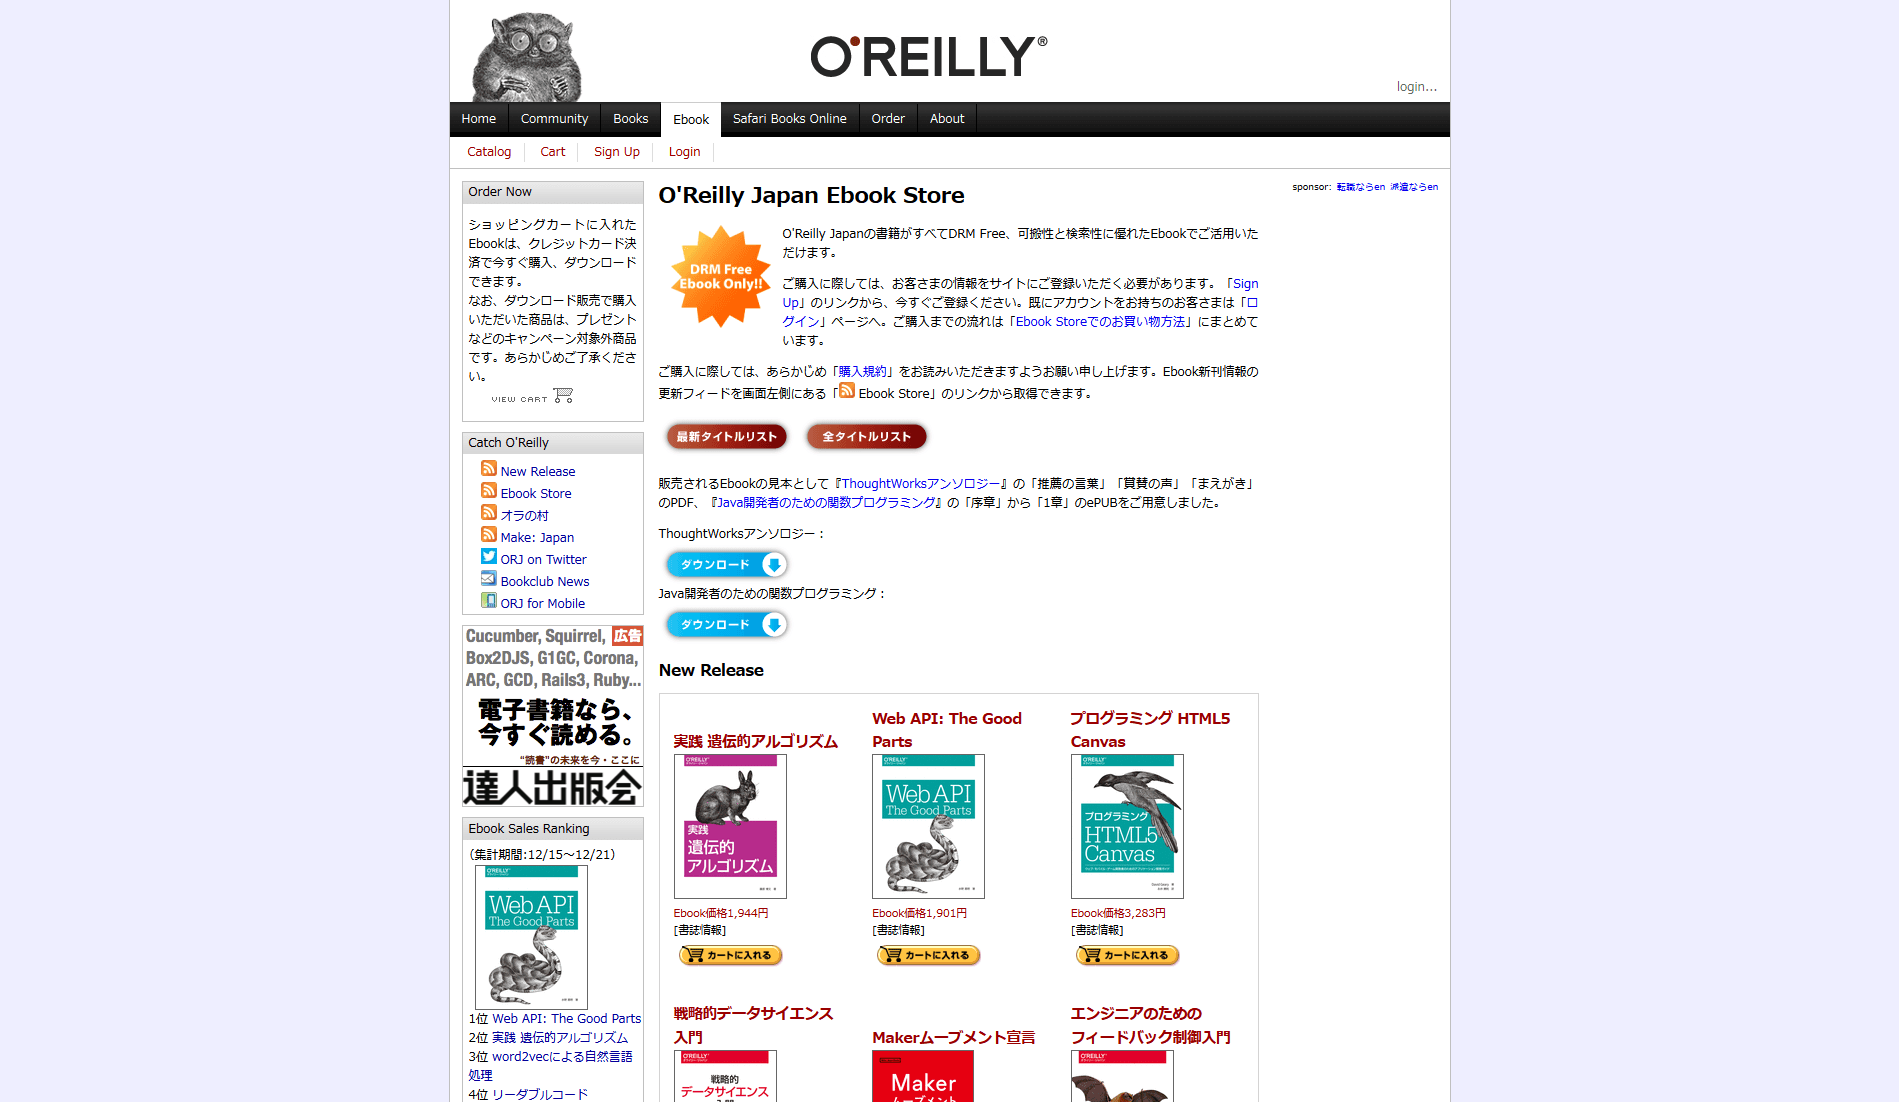 O'Reilly Japan Ebook Store